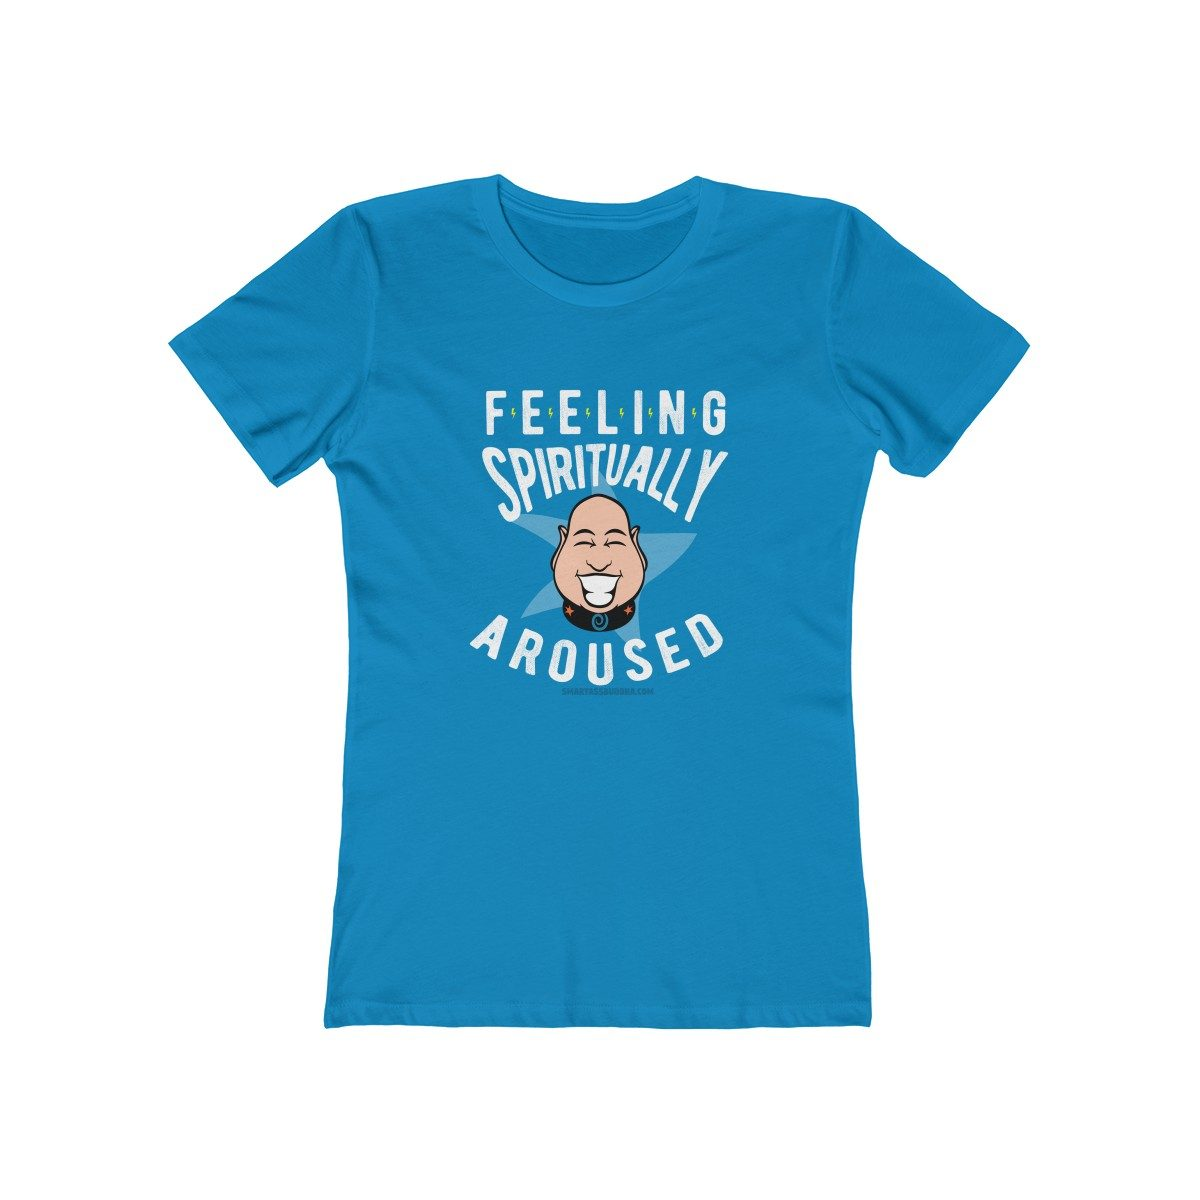 feeling-spiritually-aroused-thsirts-with-sayings-for-women-gift-blue